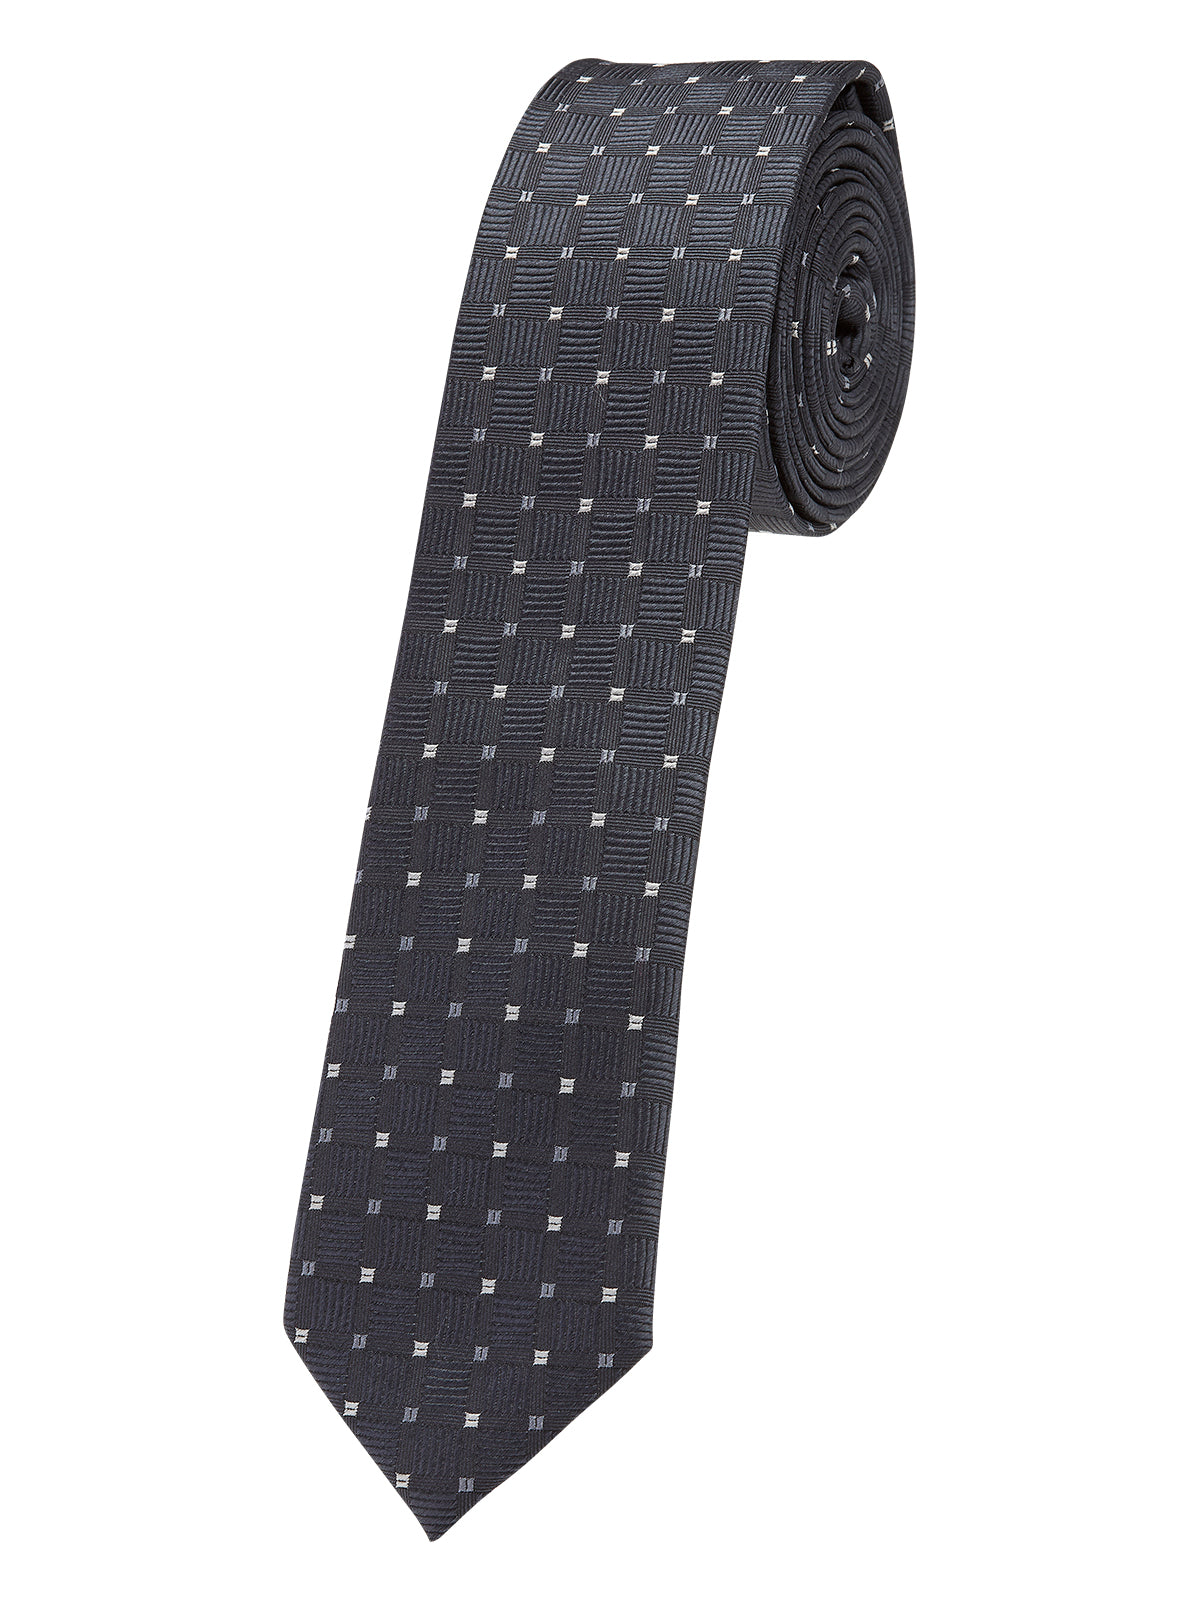 TIE SILK DIAMOND TEXTURED SKINNY GRANITE